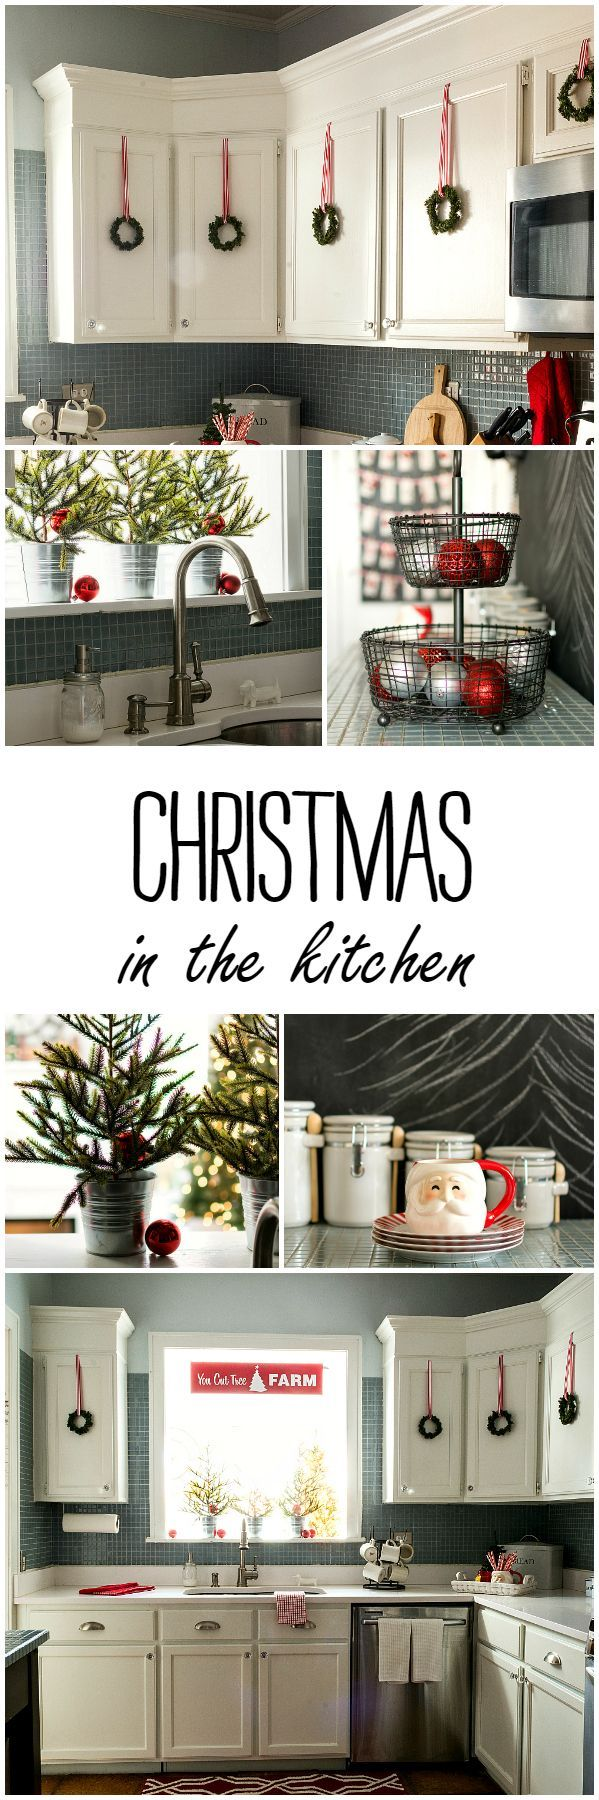 25 Best Ideas About Christmas Kitchen On Pinterest Farmhouse Christmas Kitchen Christmas